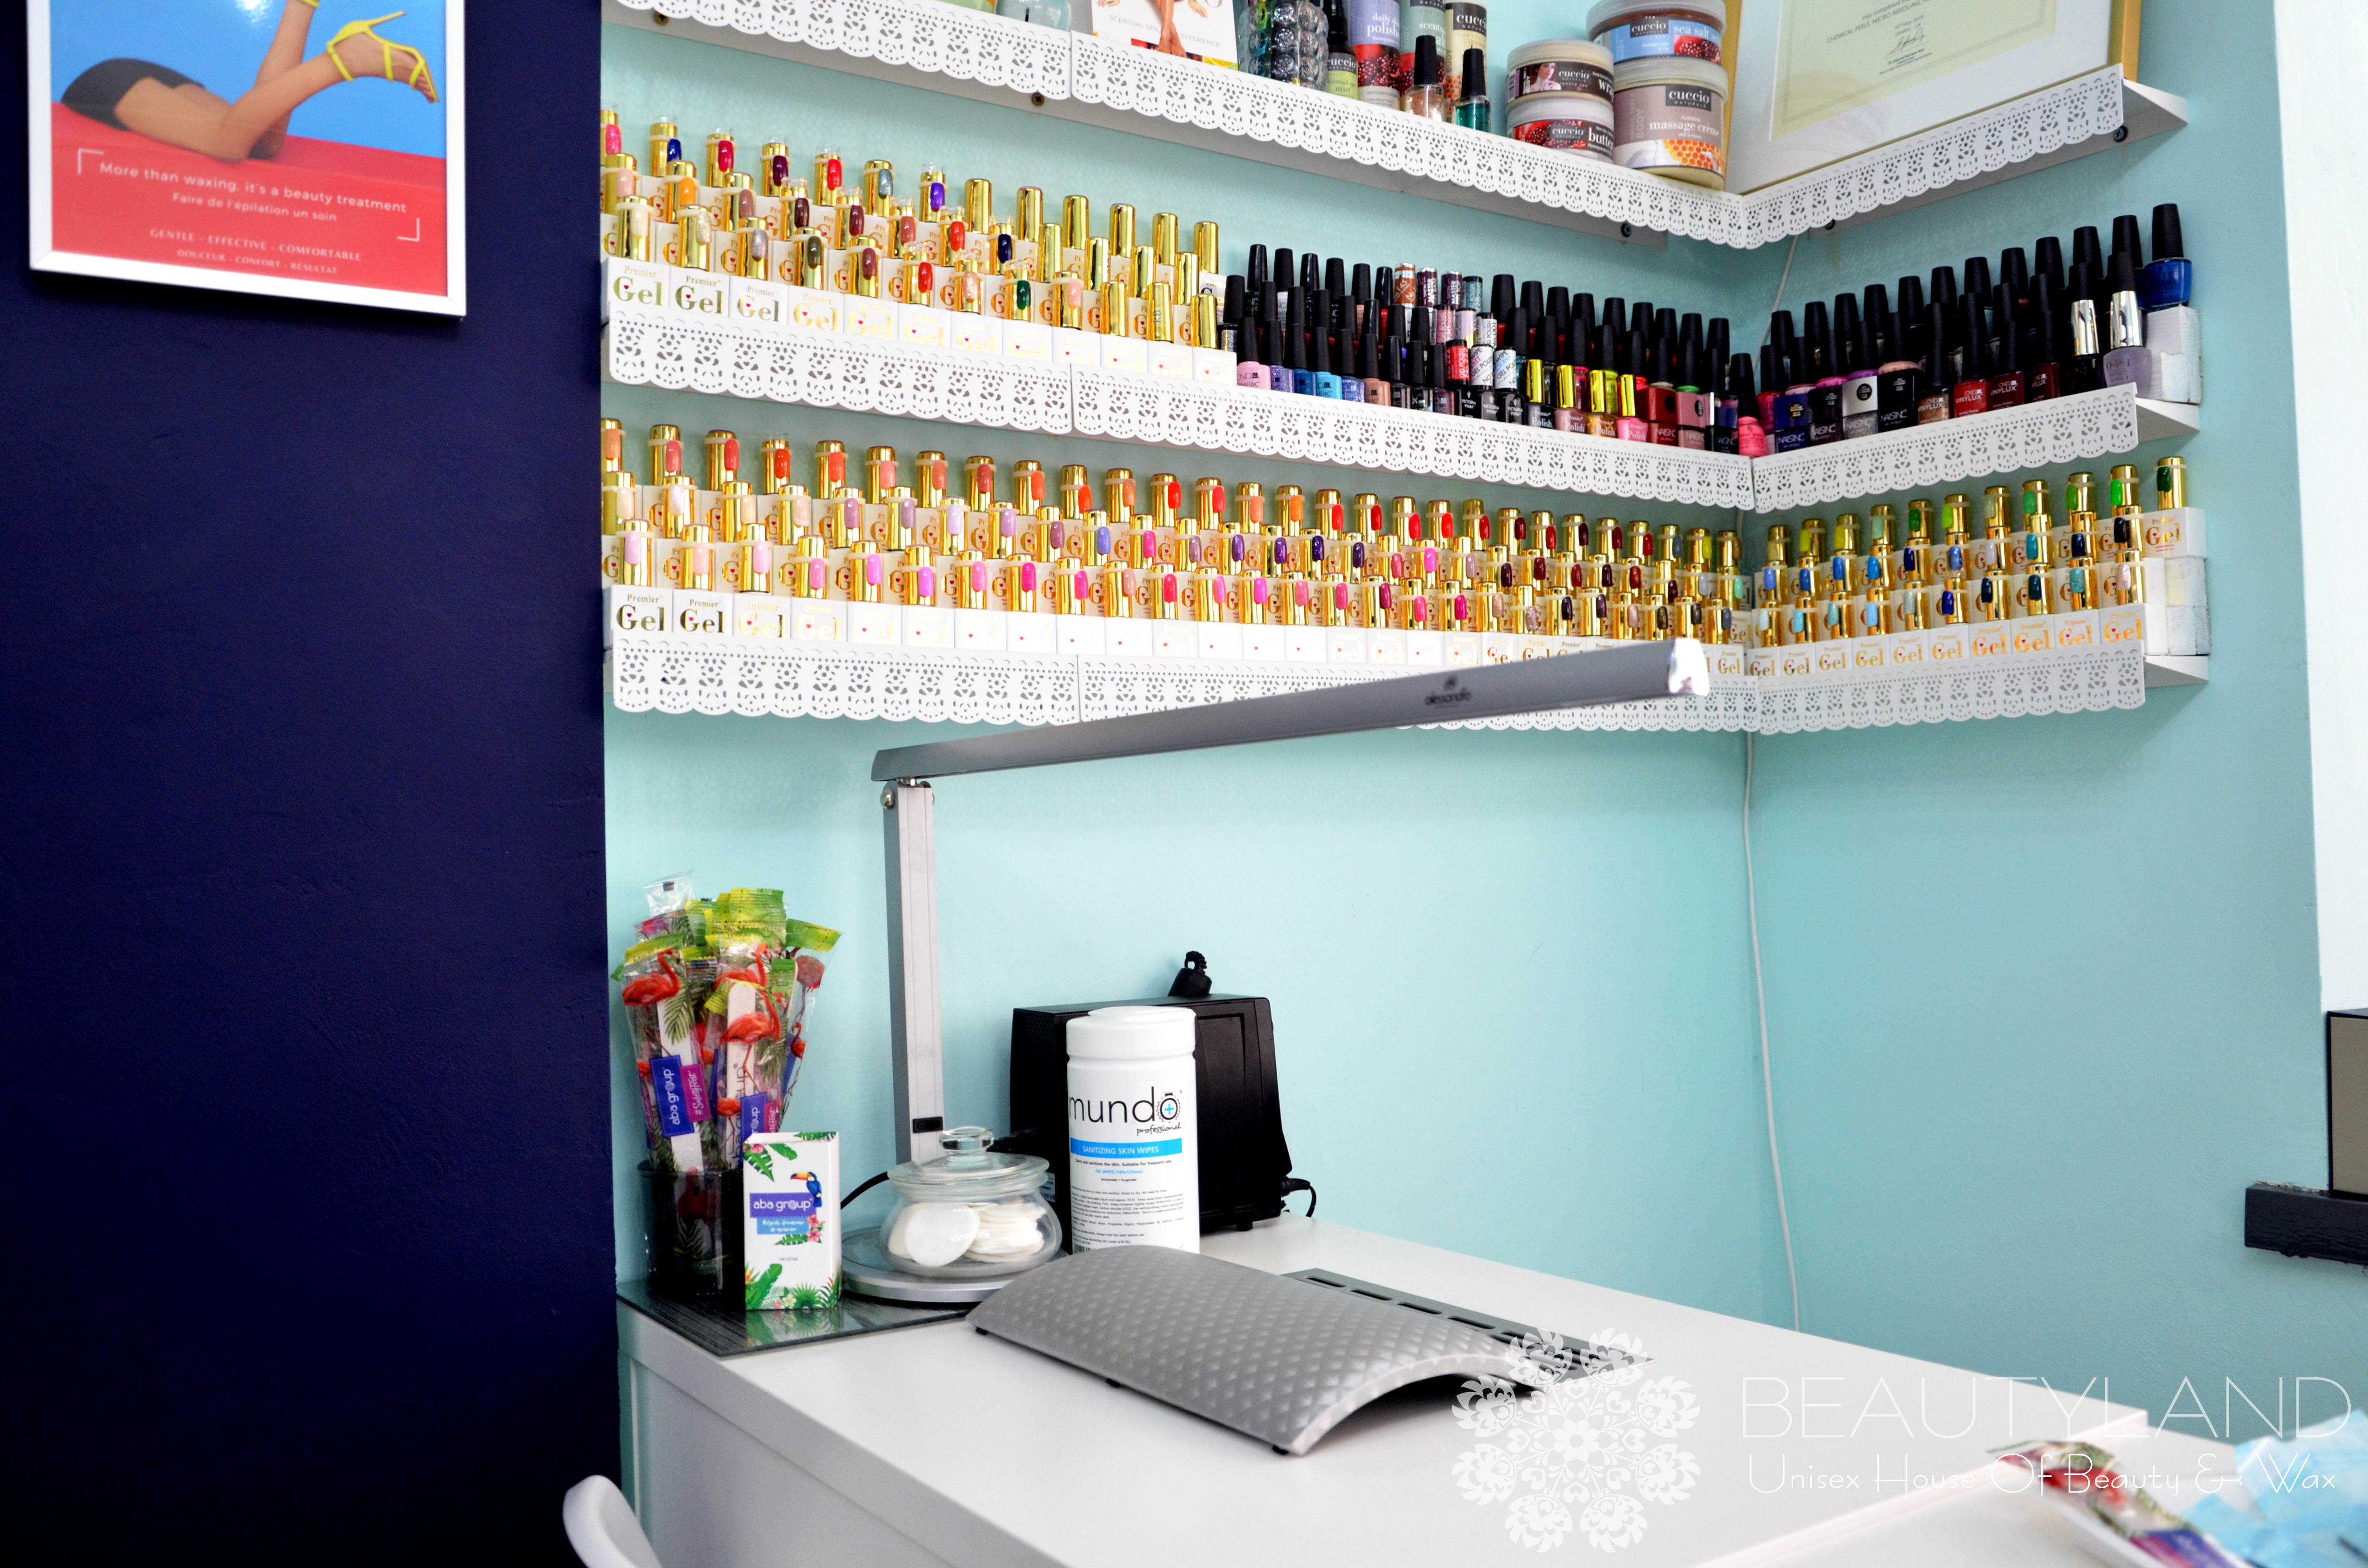 BEAUTYLAND WILLENHALL ( WALSALL) Unisex House of Beauty and Wax, Safrty Hygiene high transfer.JPG